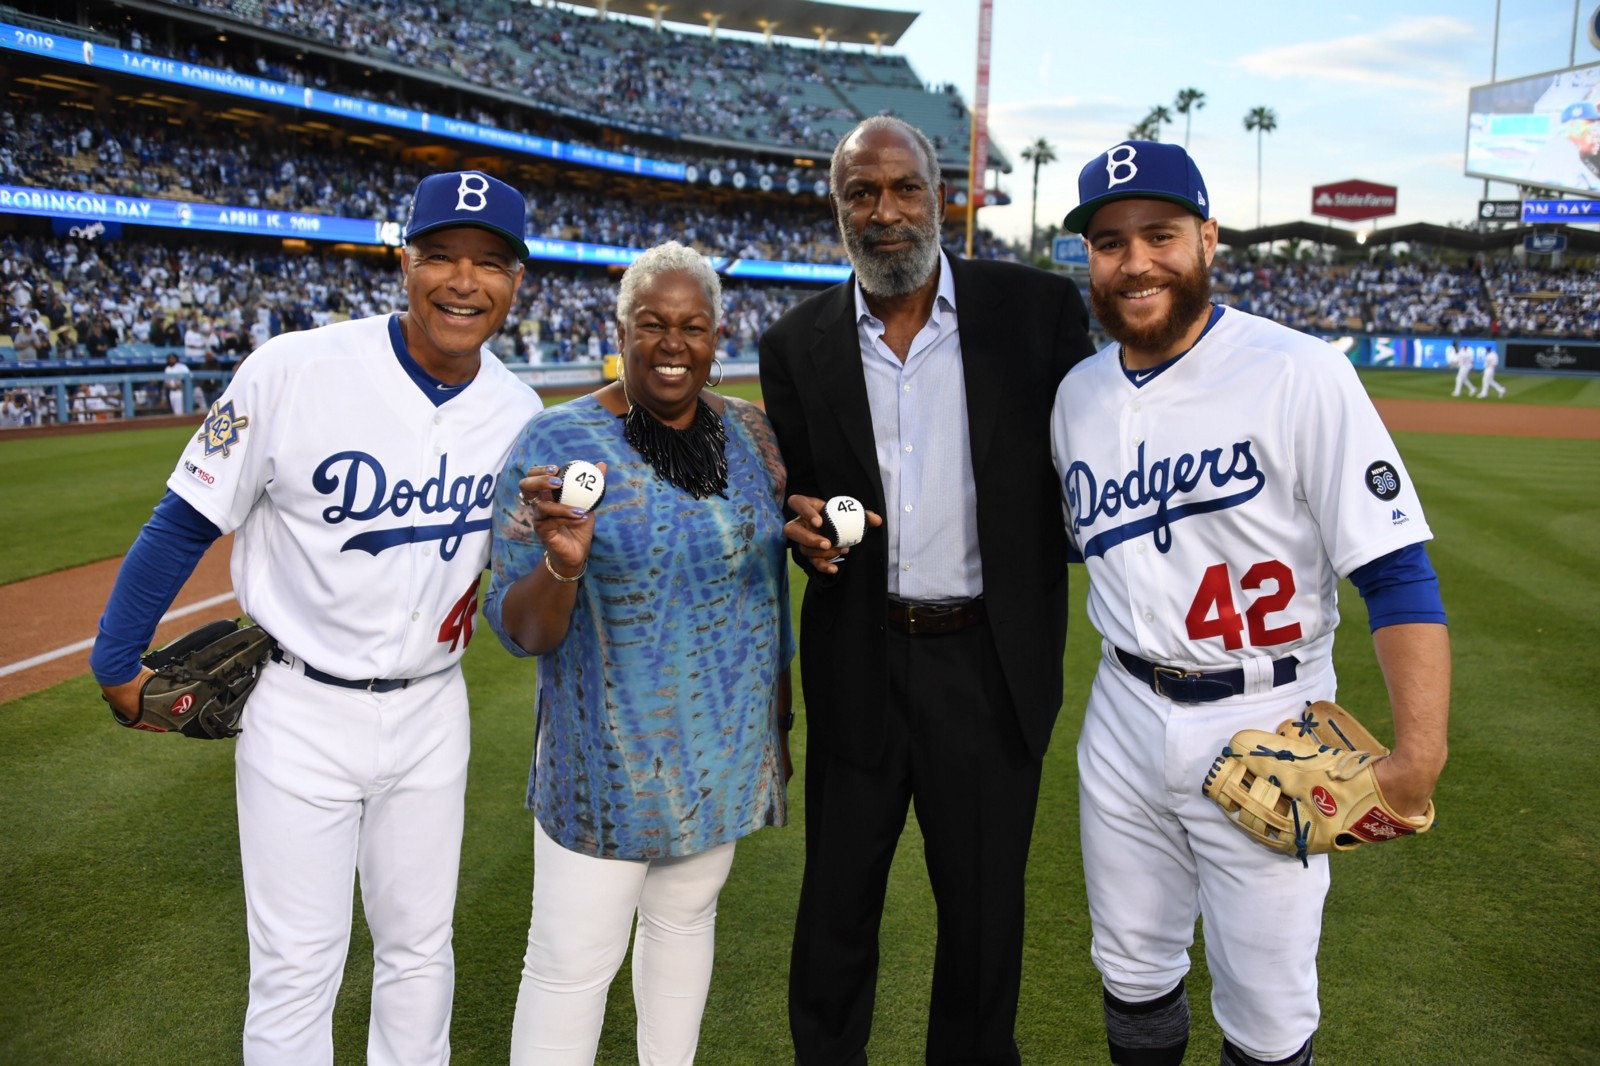 mlb celebrates jackie robinson day in year of his 100th birthday